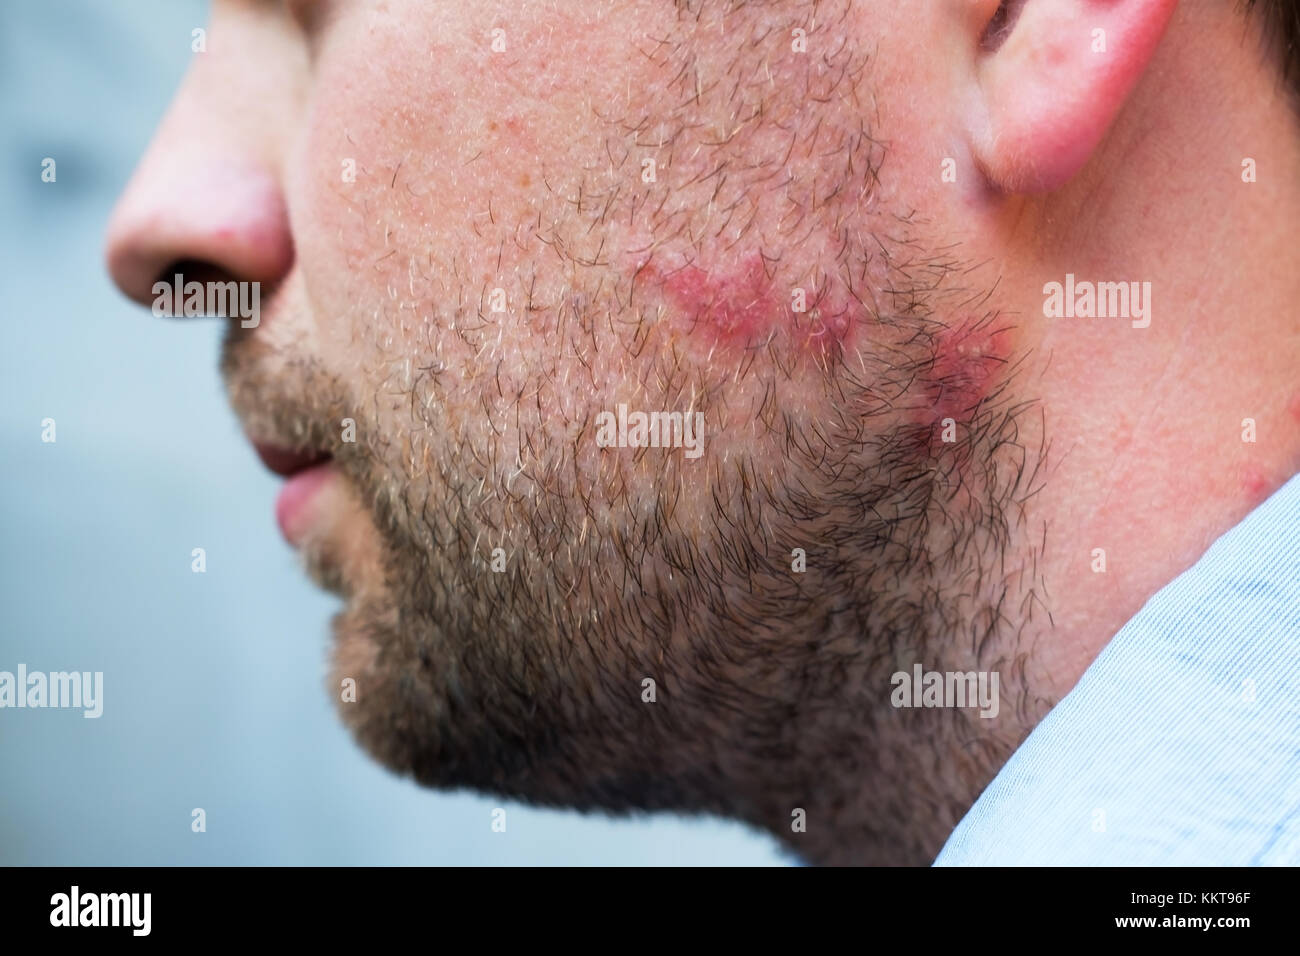 Rash reaction from drug or food allergy on face of caucasian man - Stock Image